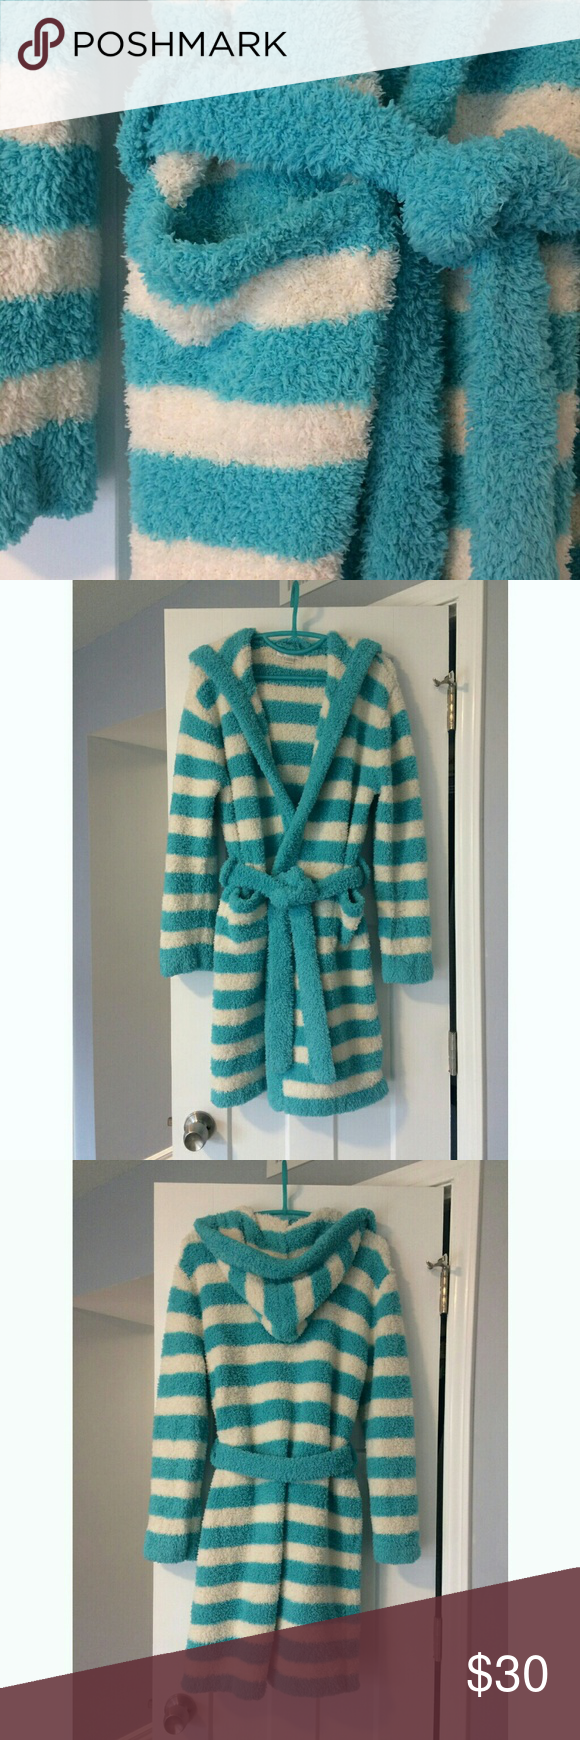 CozyChic Barefoot Dreams robe Terry cloth robe, Clothes